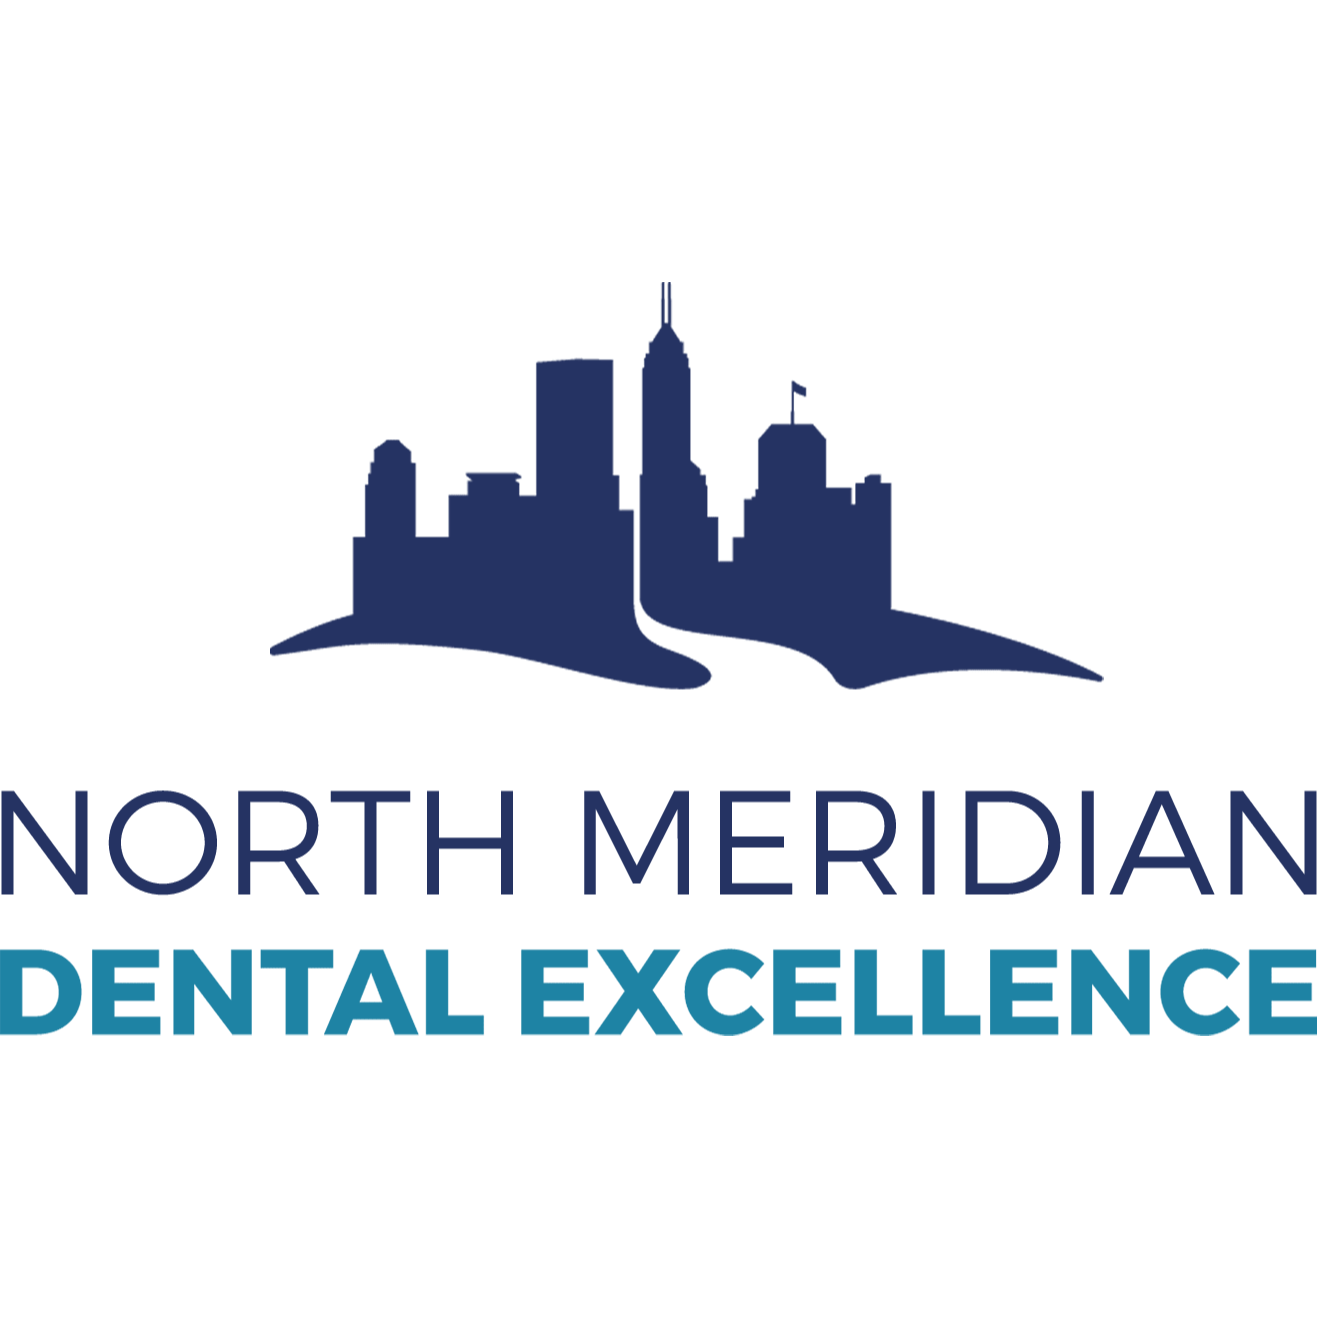 North Meridian Dental Excellence: Ben Ahlbrecht, DDS